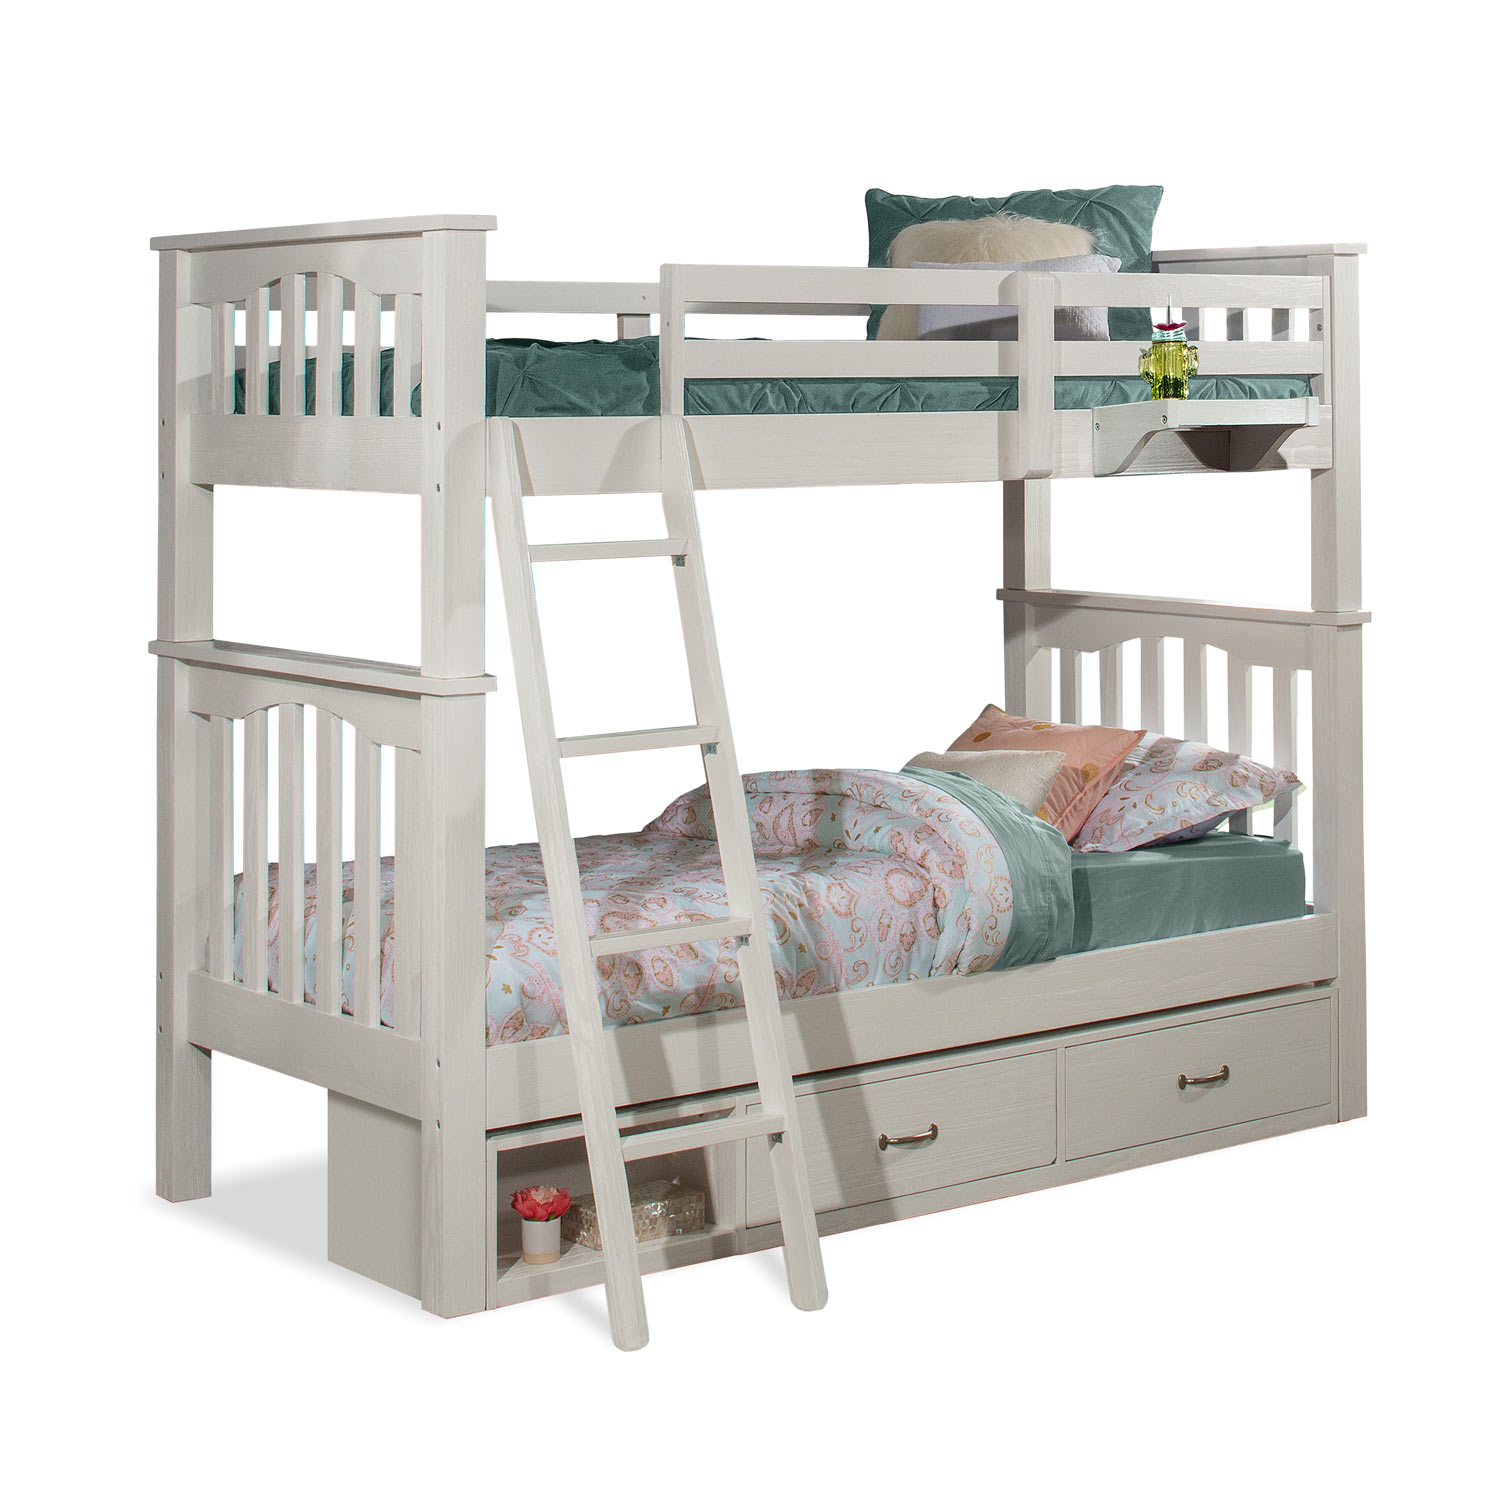 NE Kids Highlands Harper Twin/Twin Bunk Bed with Storage Unit and Hanging Nightstand - White Finish